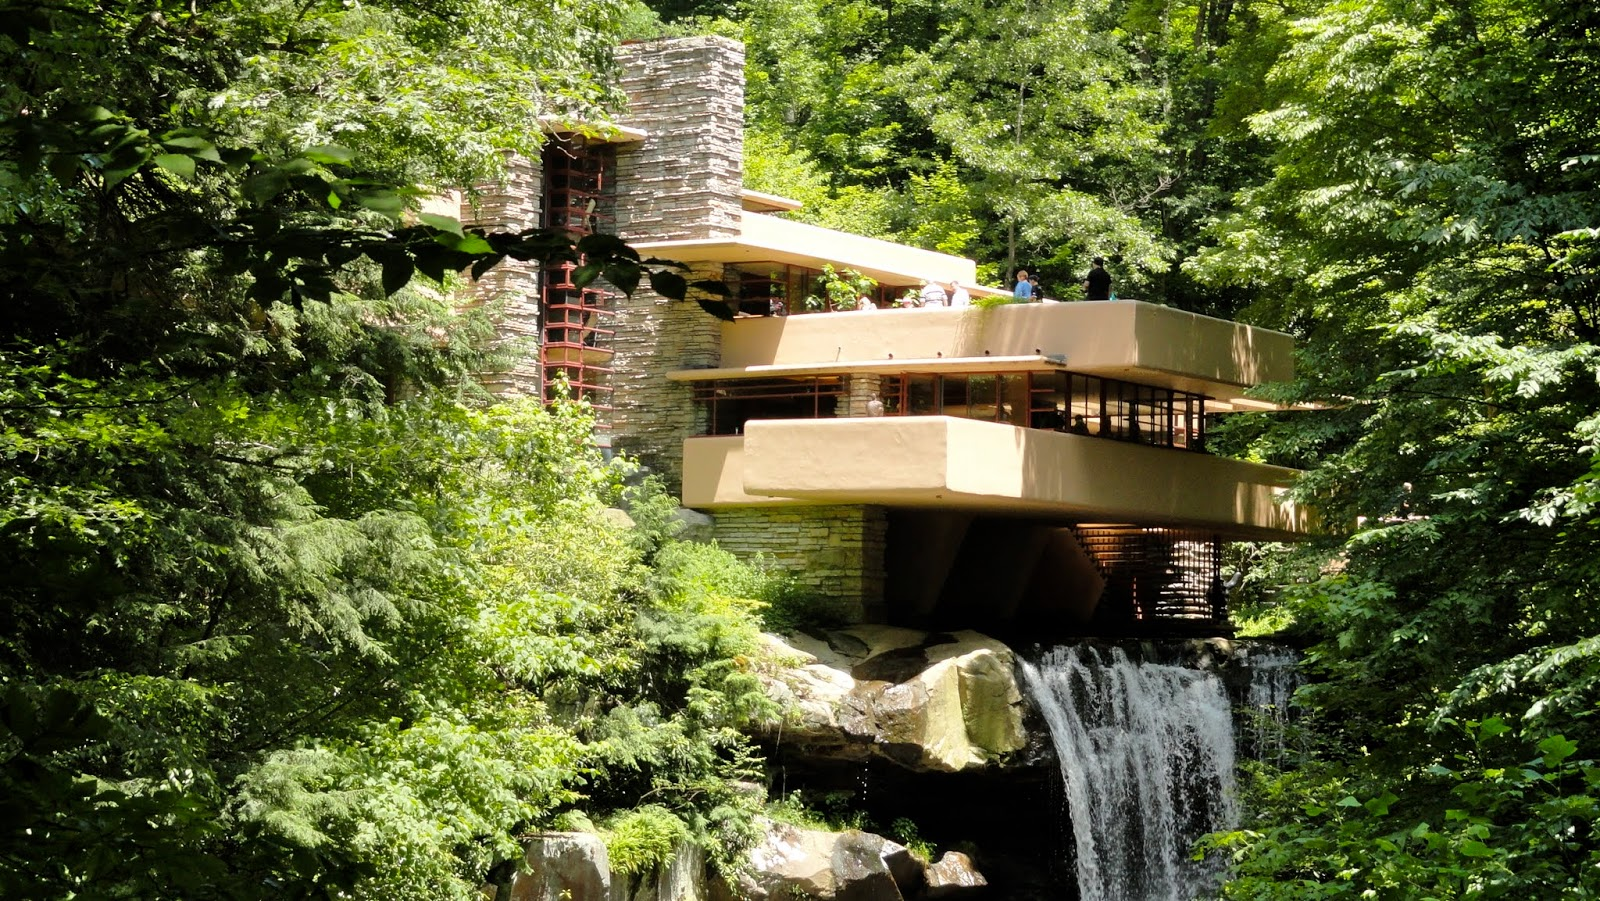 Travel on the level wright 39 s fallingwater doesn 39 t disappoint for House built on waterfall